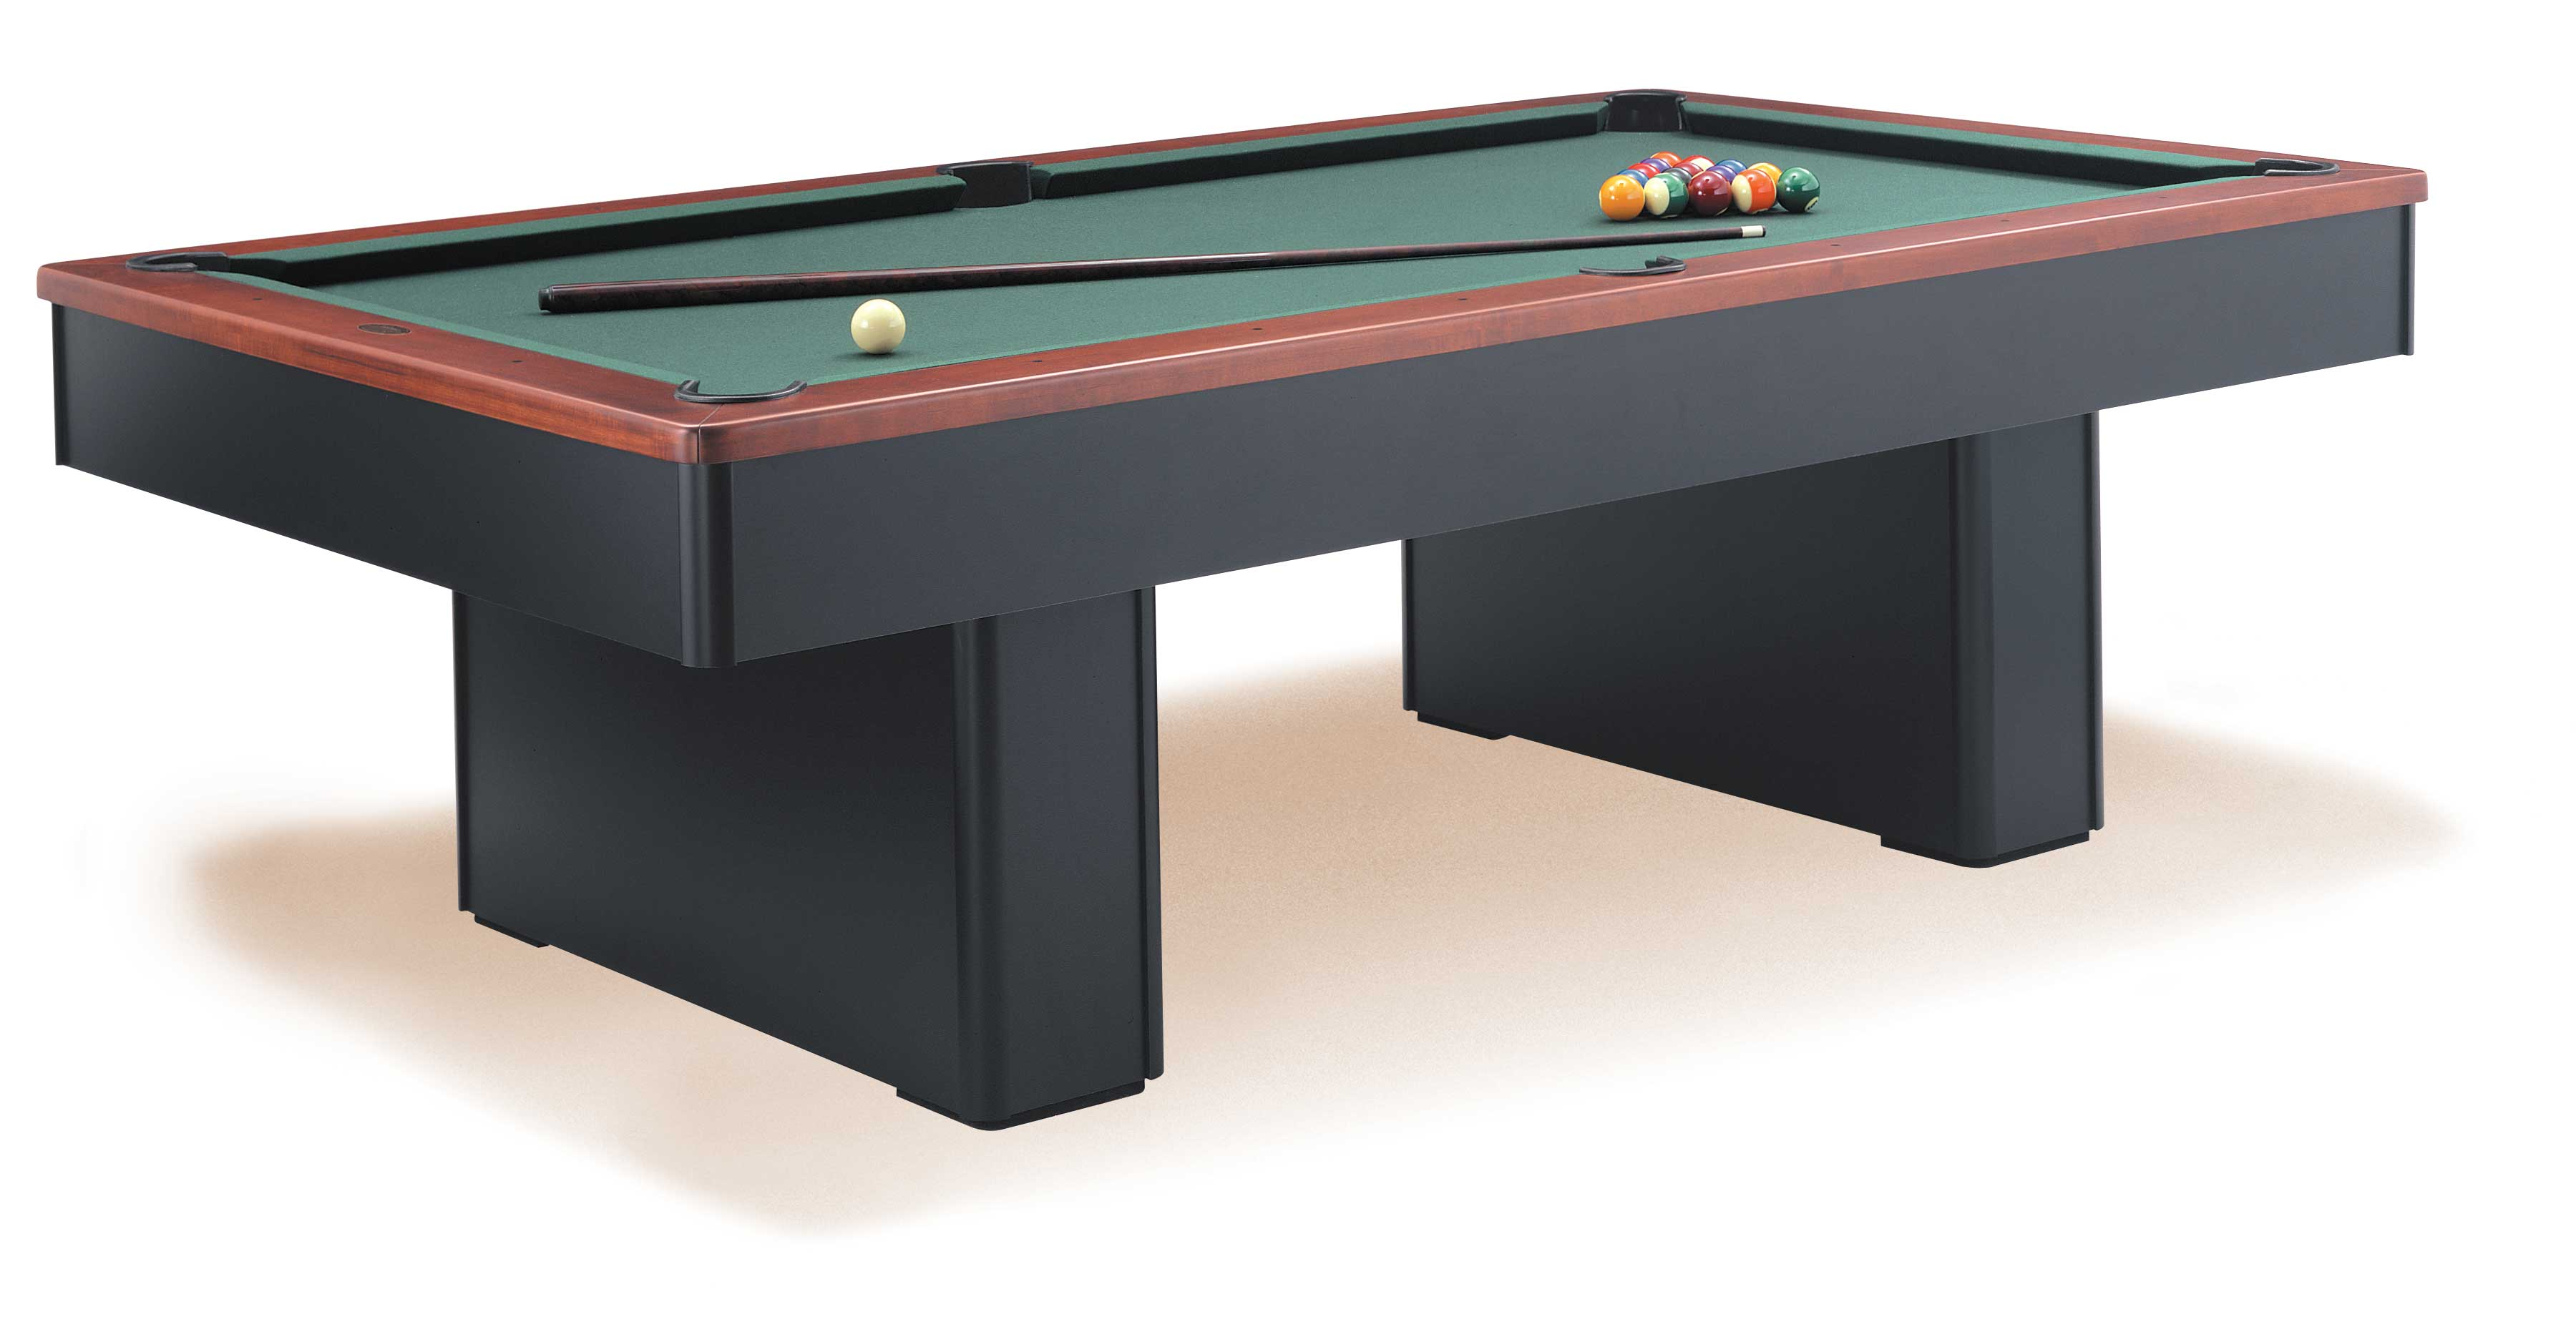 Olhausen Pool Tables For Sale New Jersey Billiards Pool Table NJ - Pool table movers orlando fl